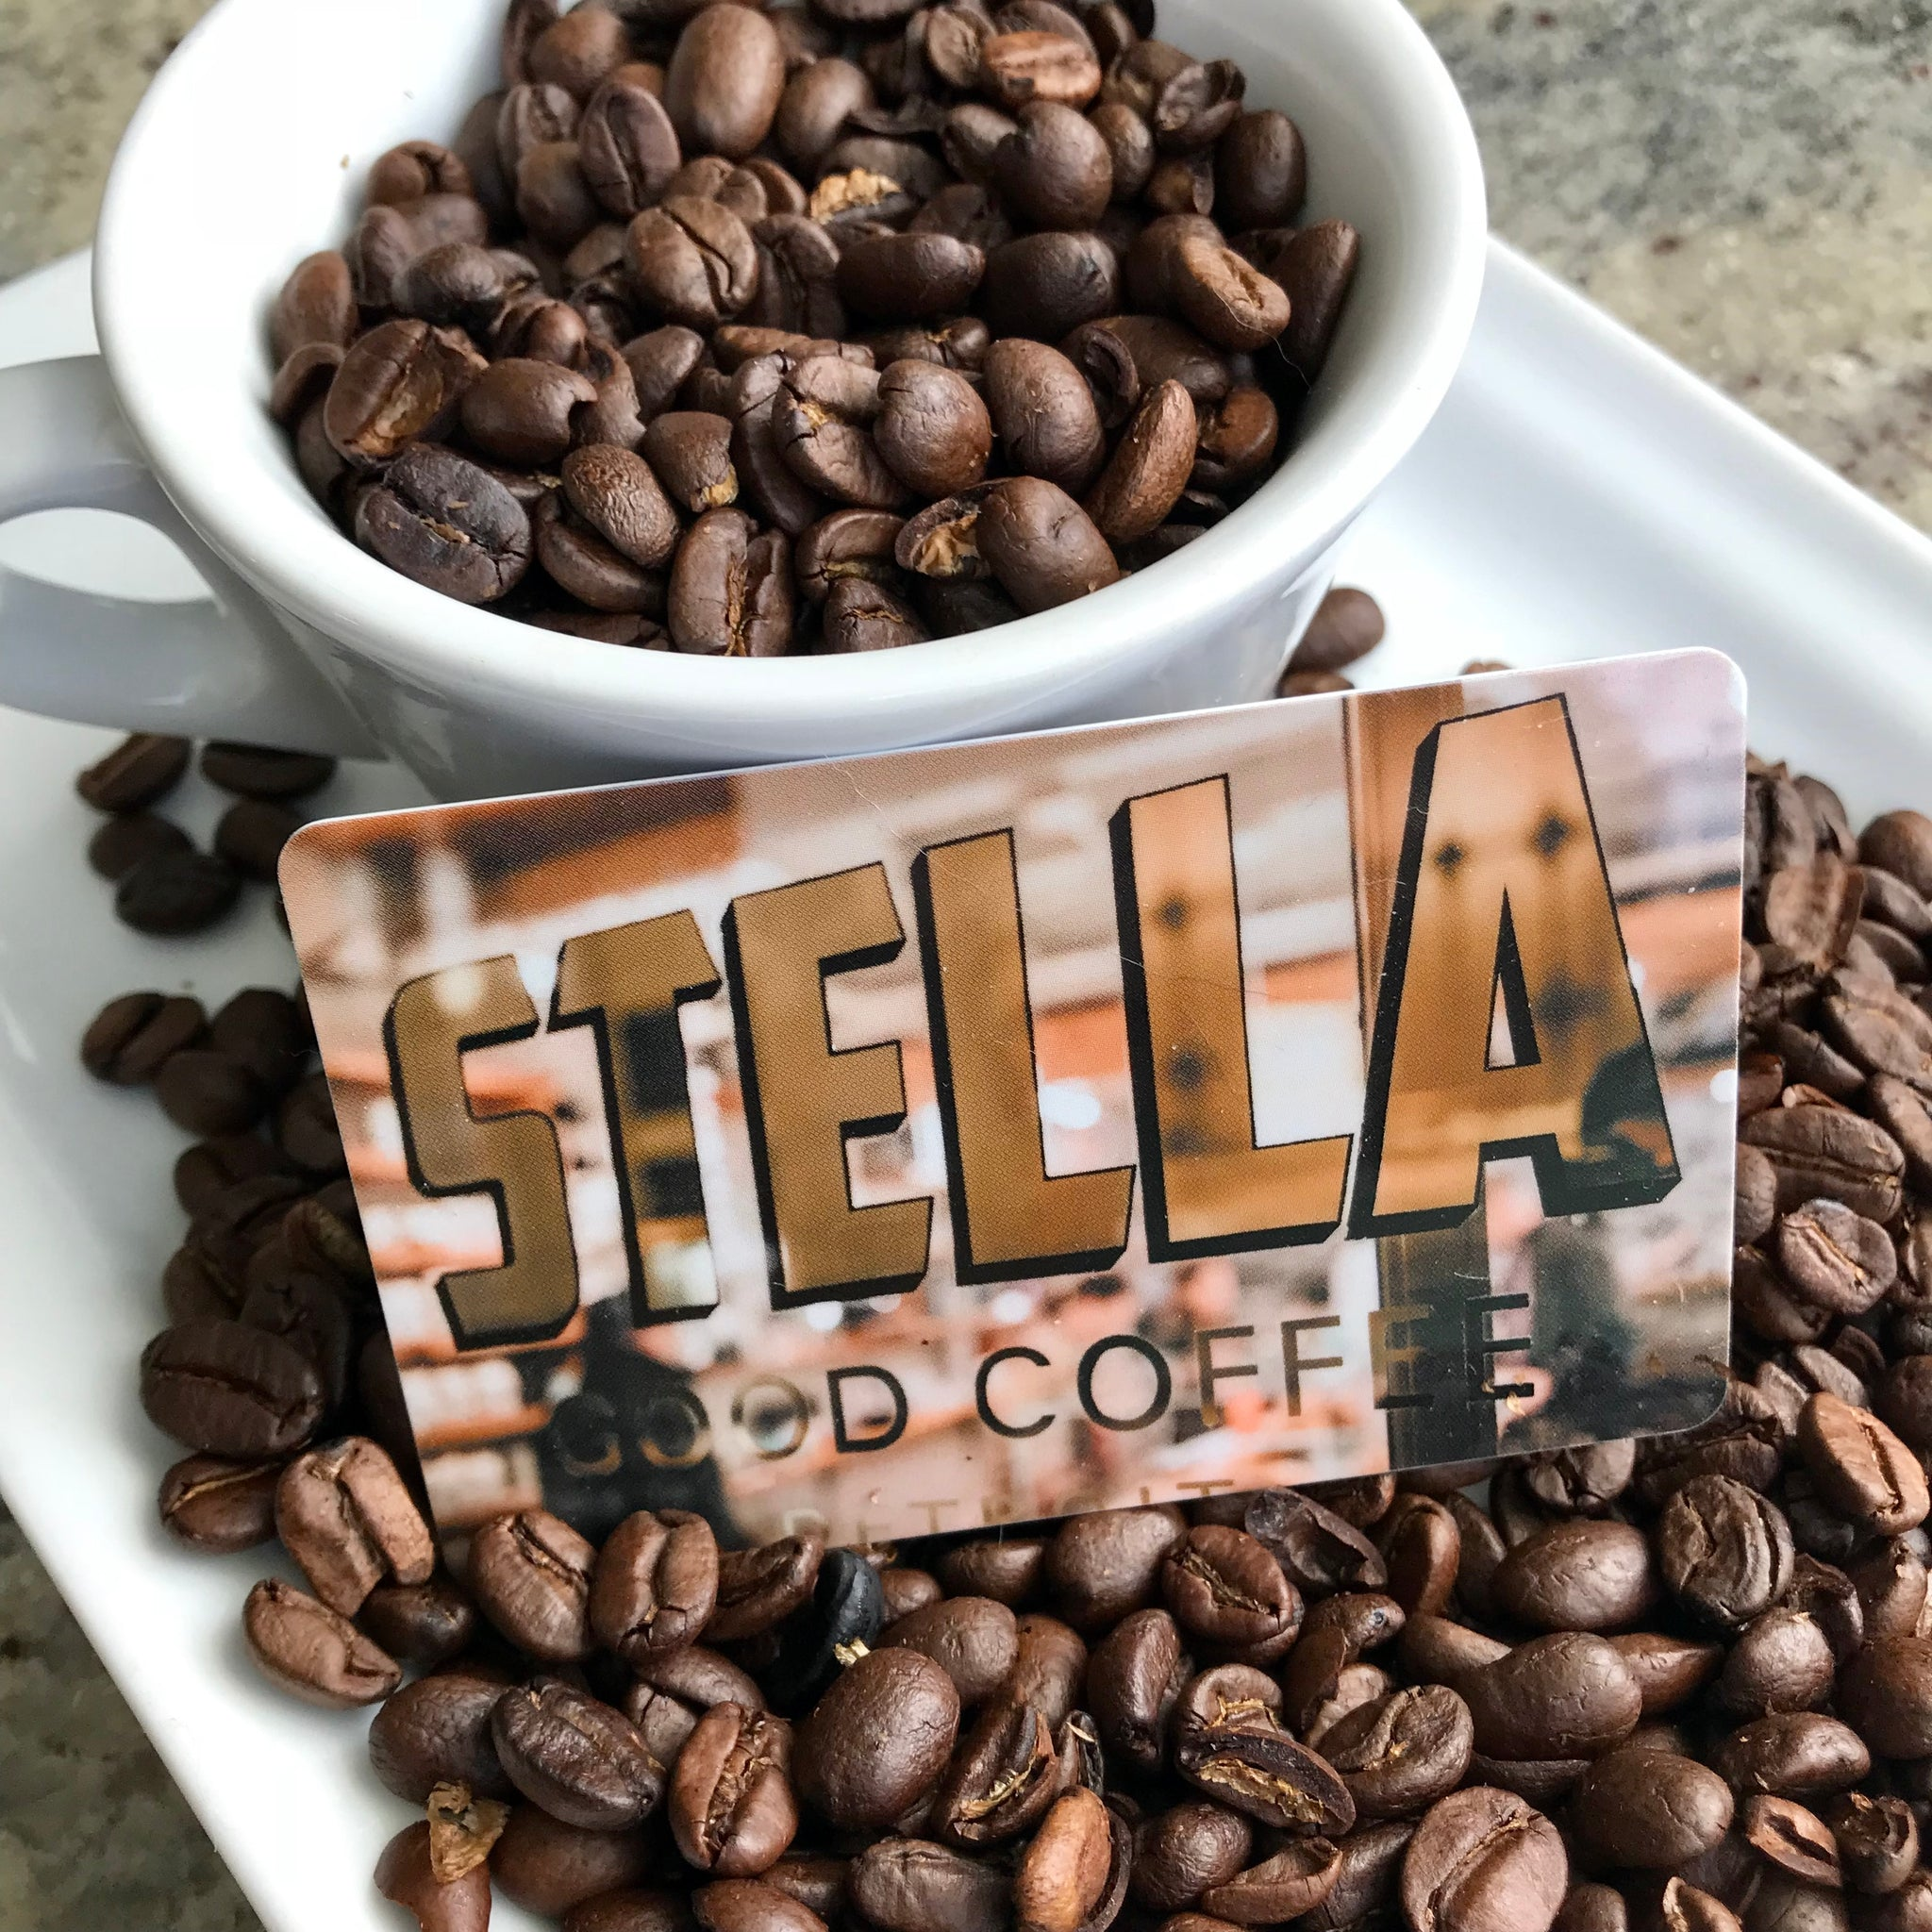 Stella Good Coffee Gift Card - $50 - Pure Detroit